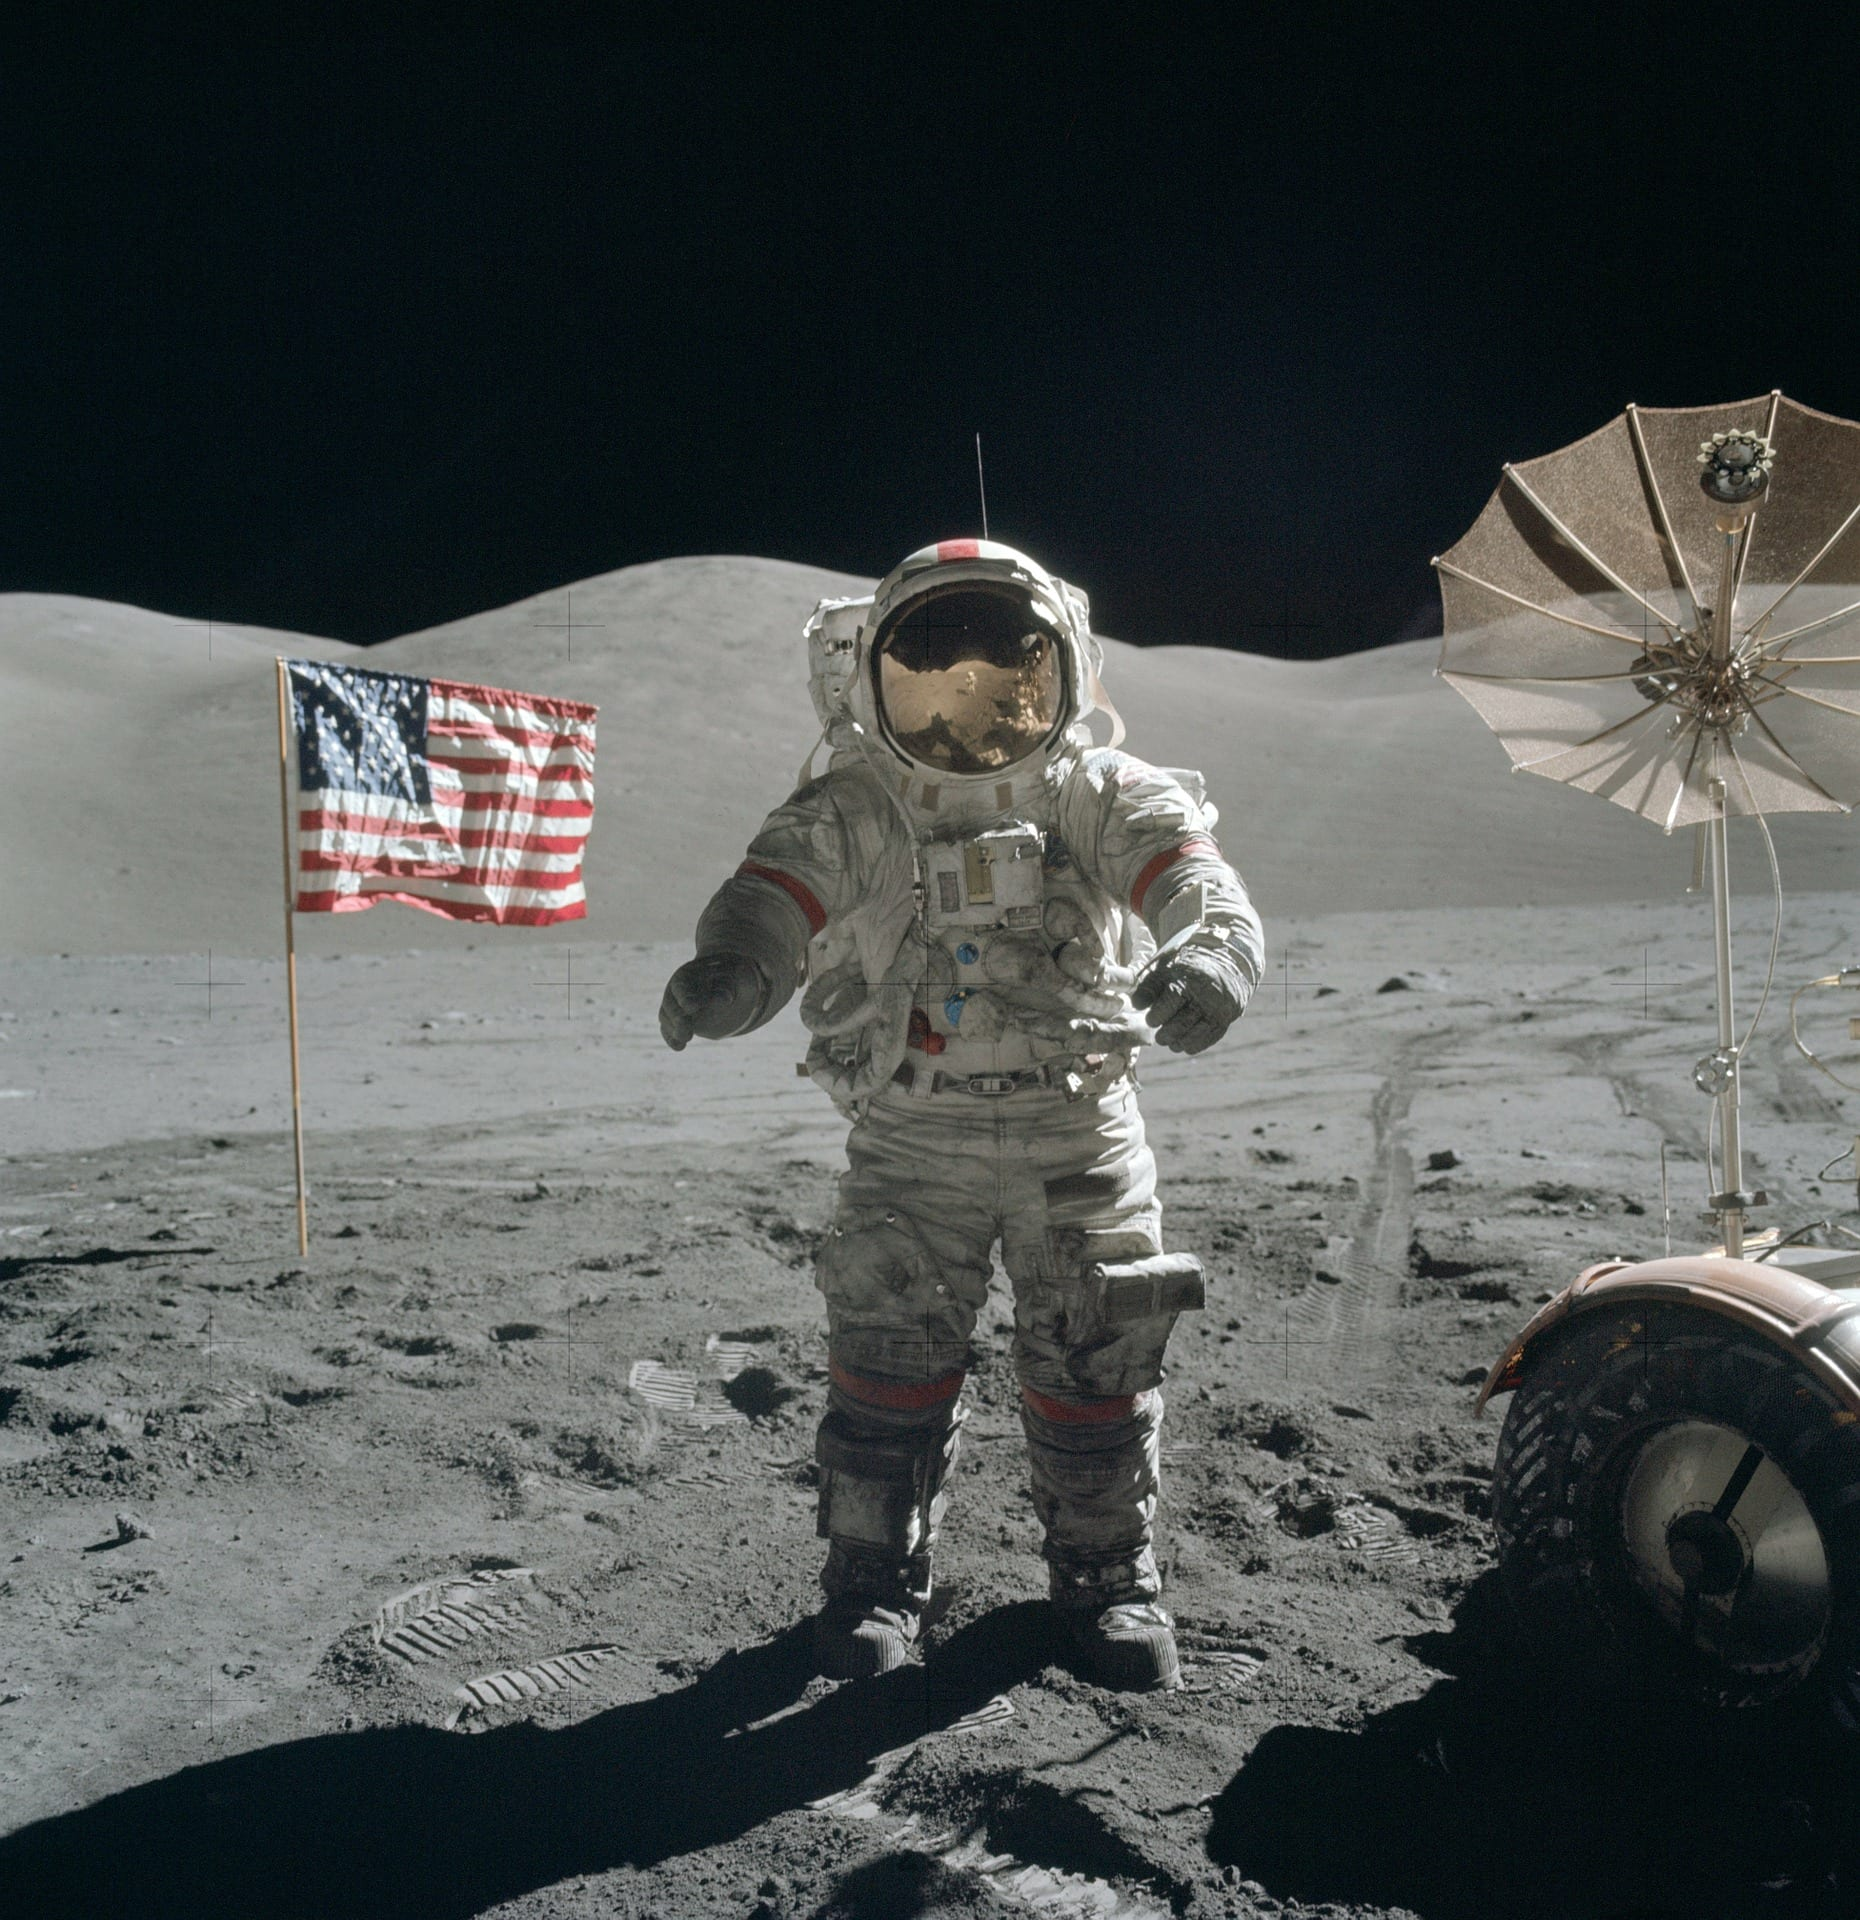 Image of an astronaut on the moon.